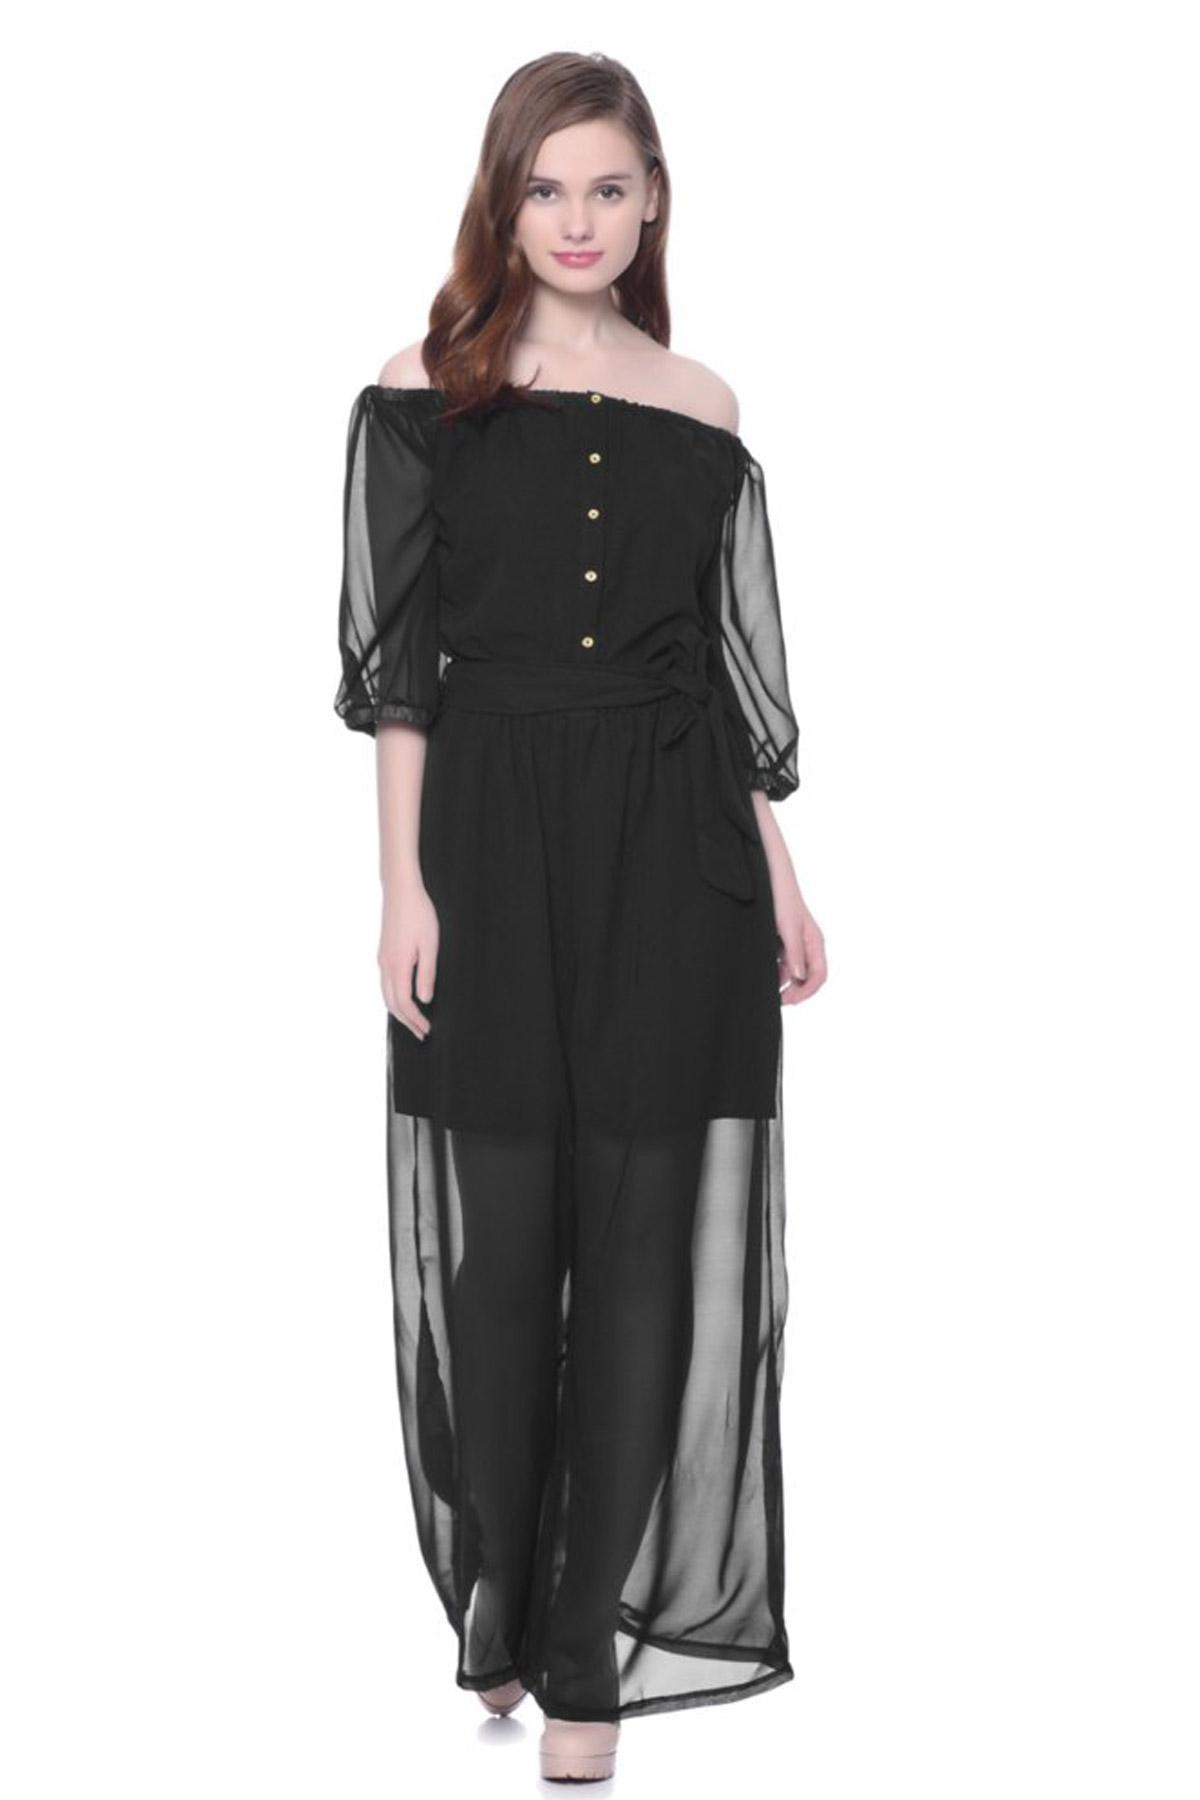 daf87b485ab06 Black Gone With The Wind Off-Shoulder Jumpsuit by Uptownie 101 for ...